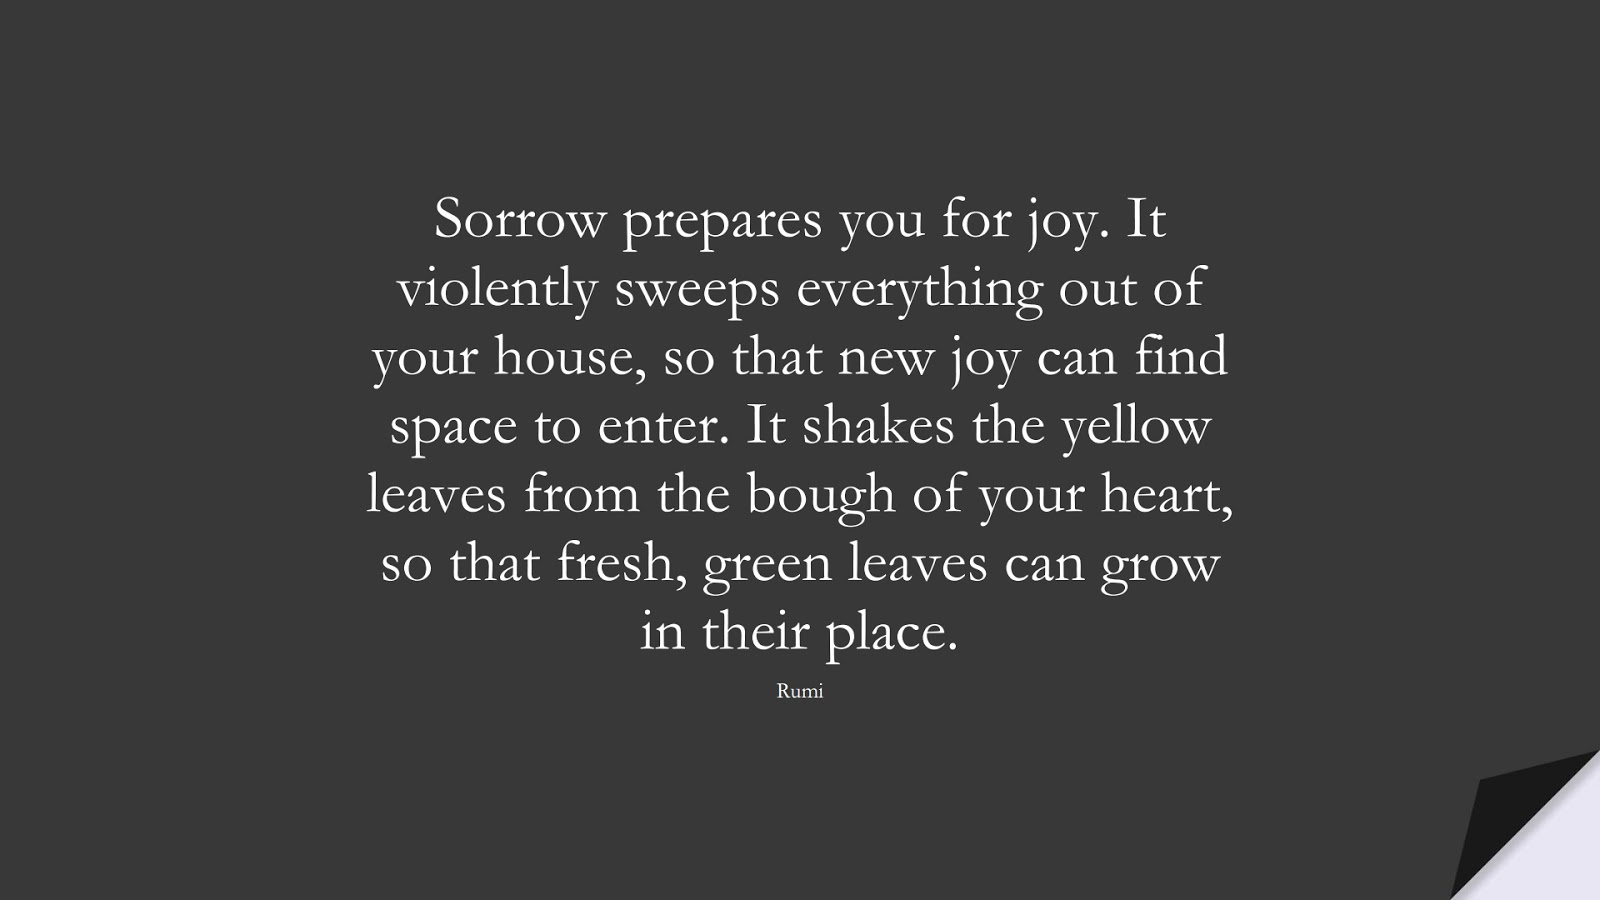 Sorrow prepares you for joy. It violently sweeps everything out of your house, so that new joy can find space to enter. It shakes the yellow leaves from the bough of your heart, so that fresh, green leaves can grow in their place. (Rumi);  #RumiQuotes